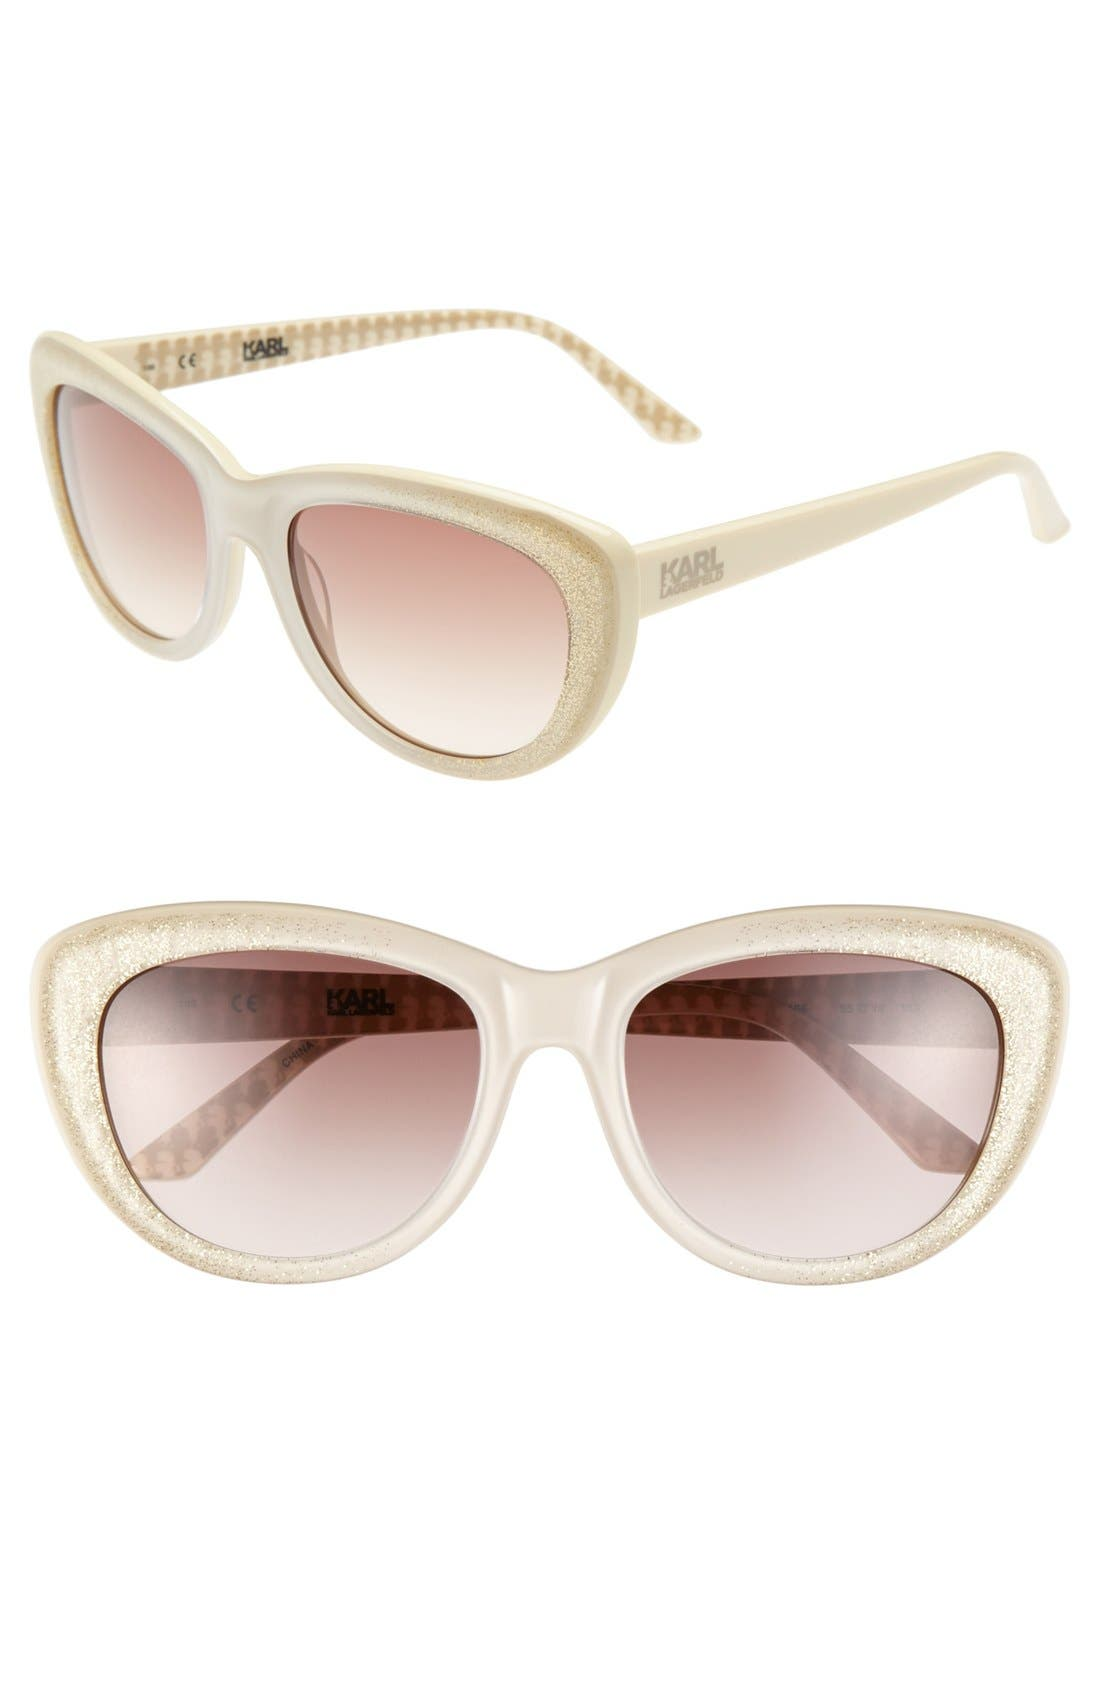 Main Image - Karl Lagerfeld 55mm Cat Eye Sunglasses